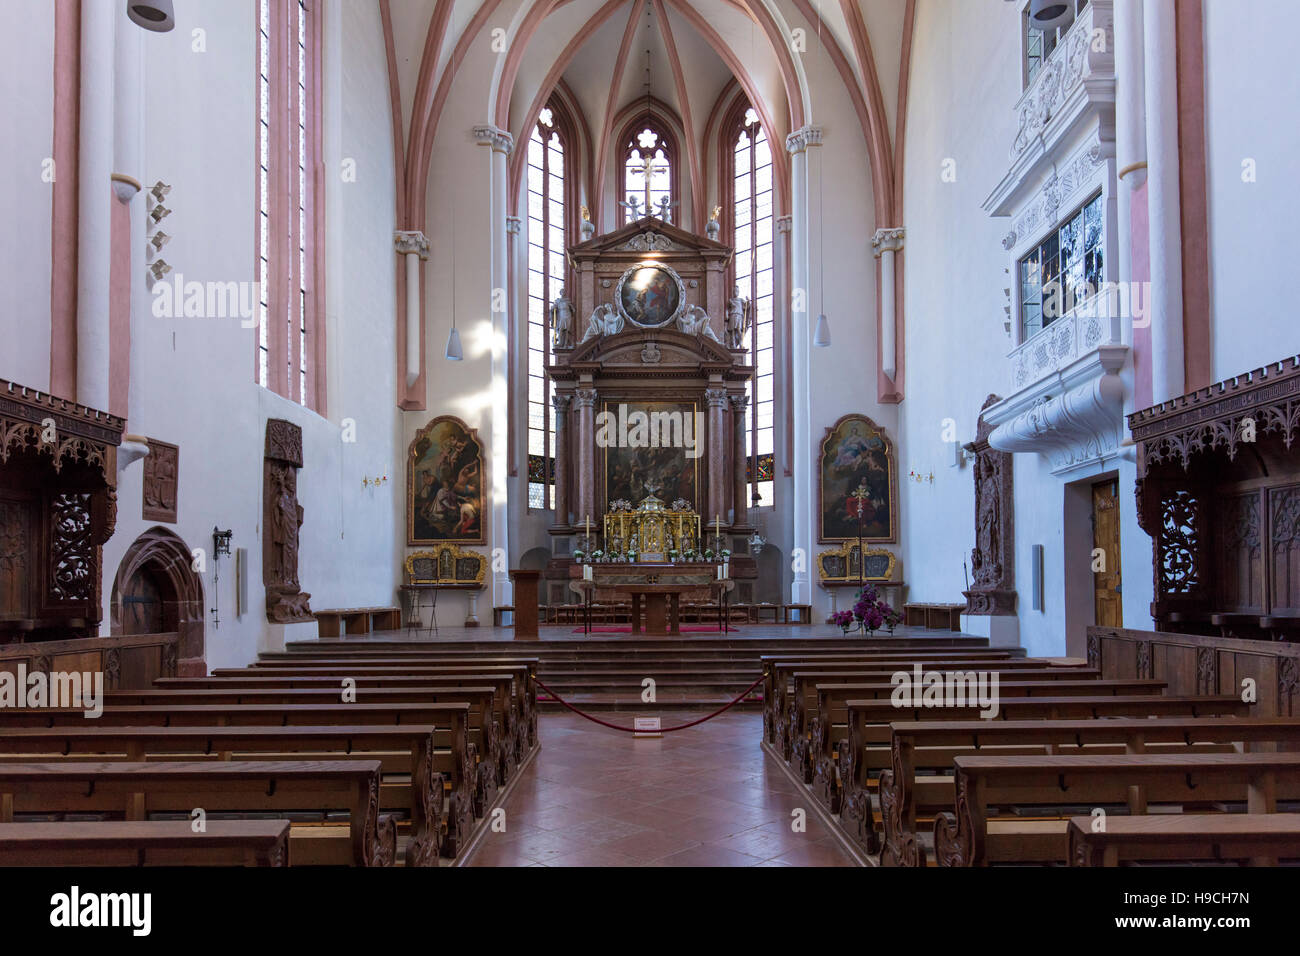 Collegiate Church of St. Peter and John the Baptist (12th c.), Berchtesgaden, Bavaria, Germany - Stock Image